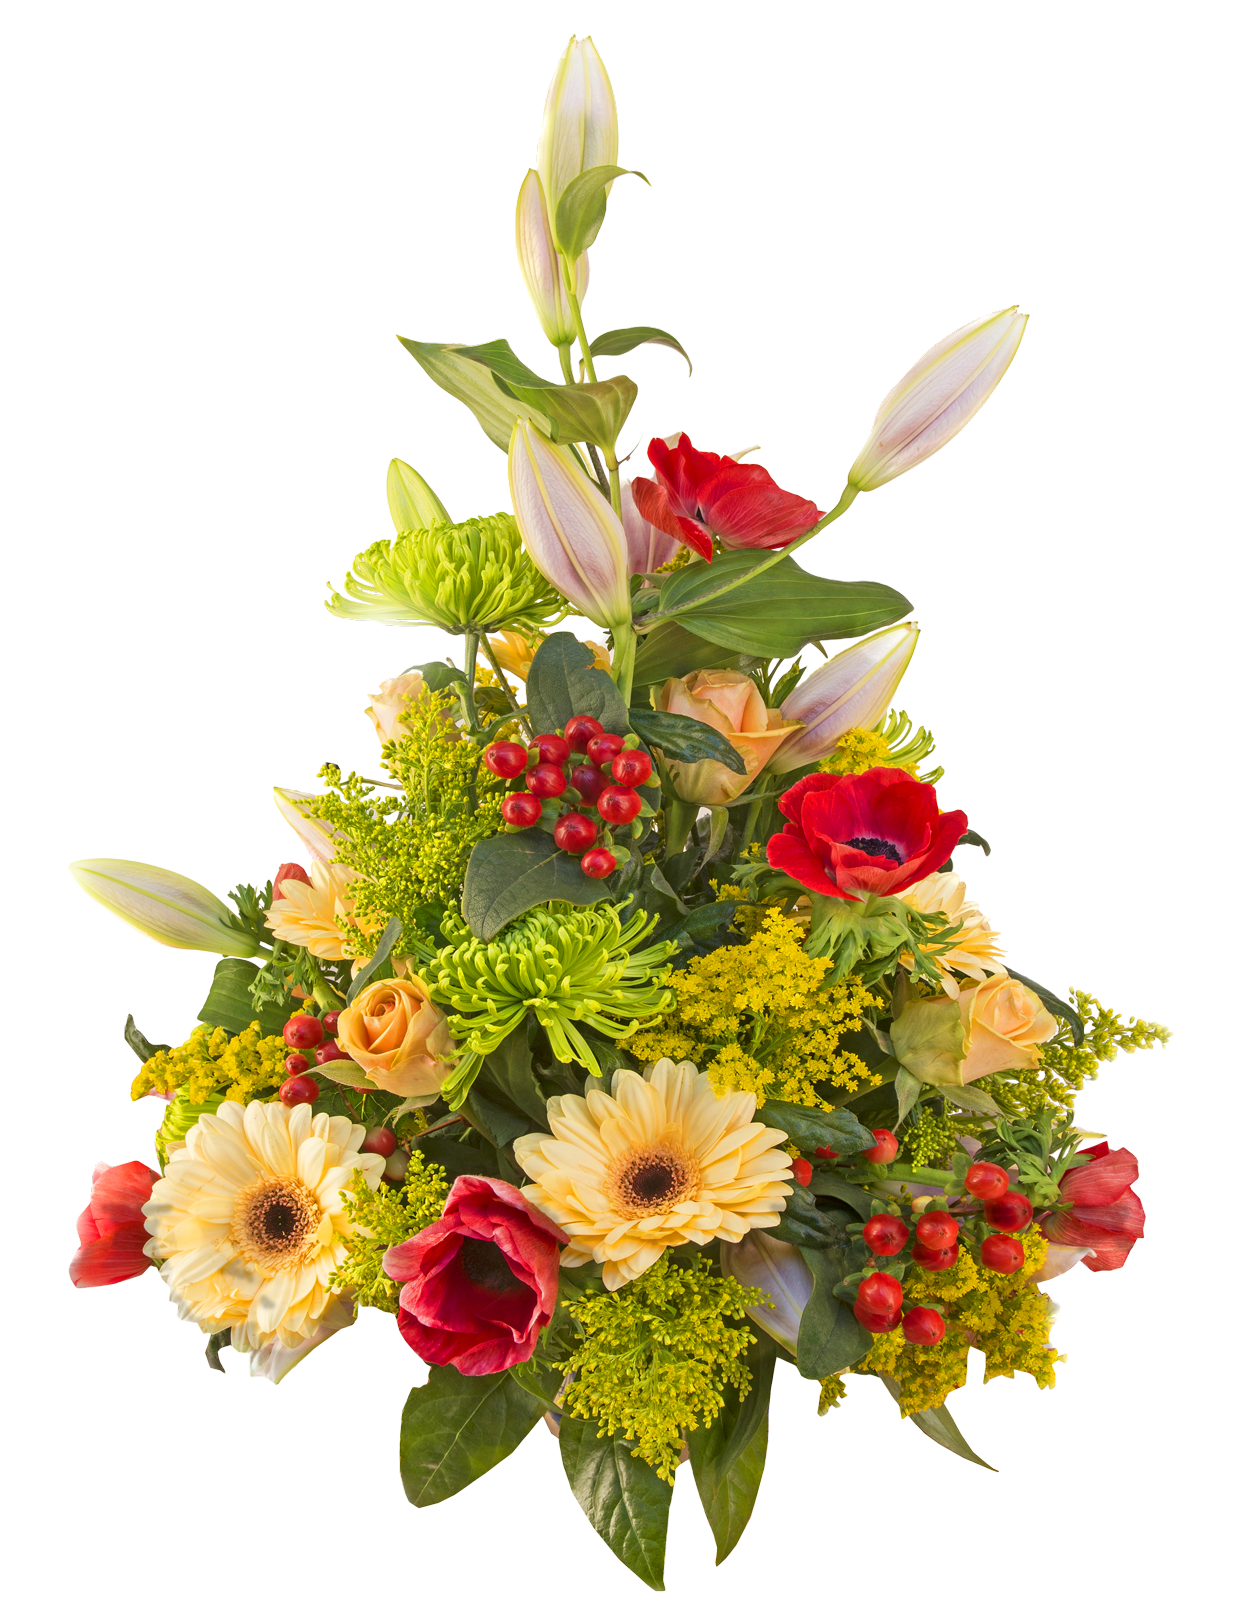 Flower Bouquet Png Image Flower Png Images Flower Bouquet Png Bouquet Images